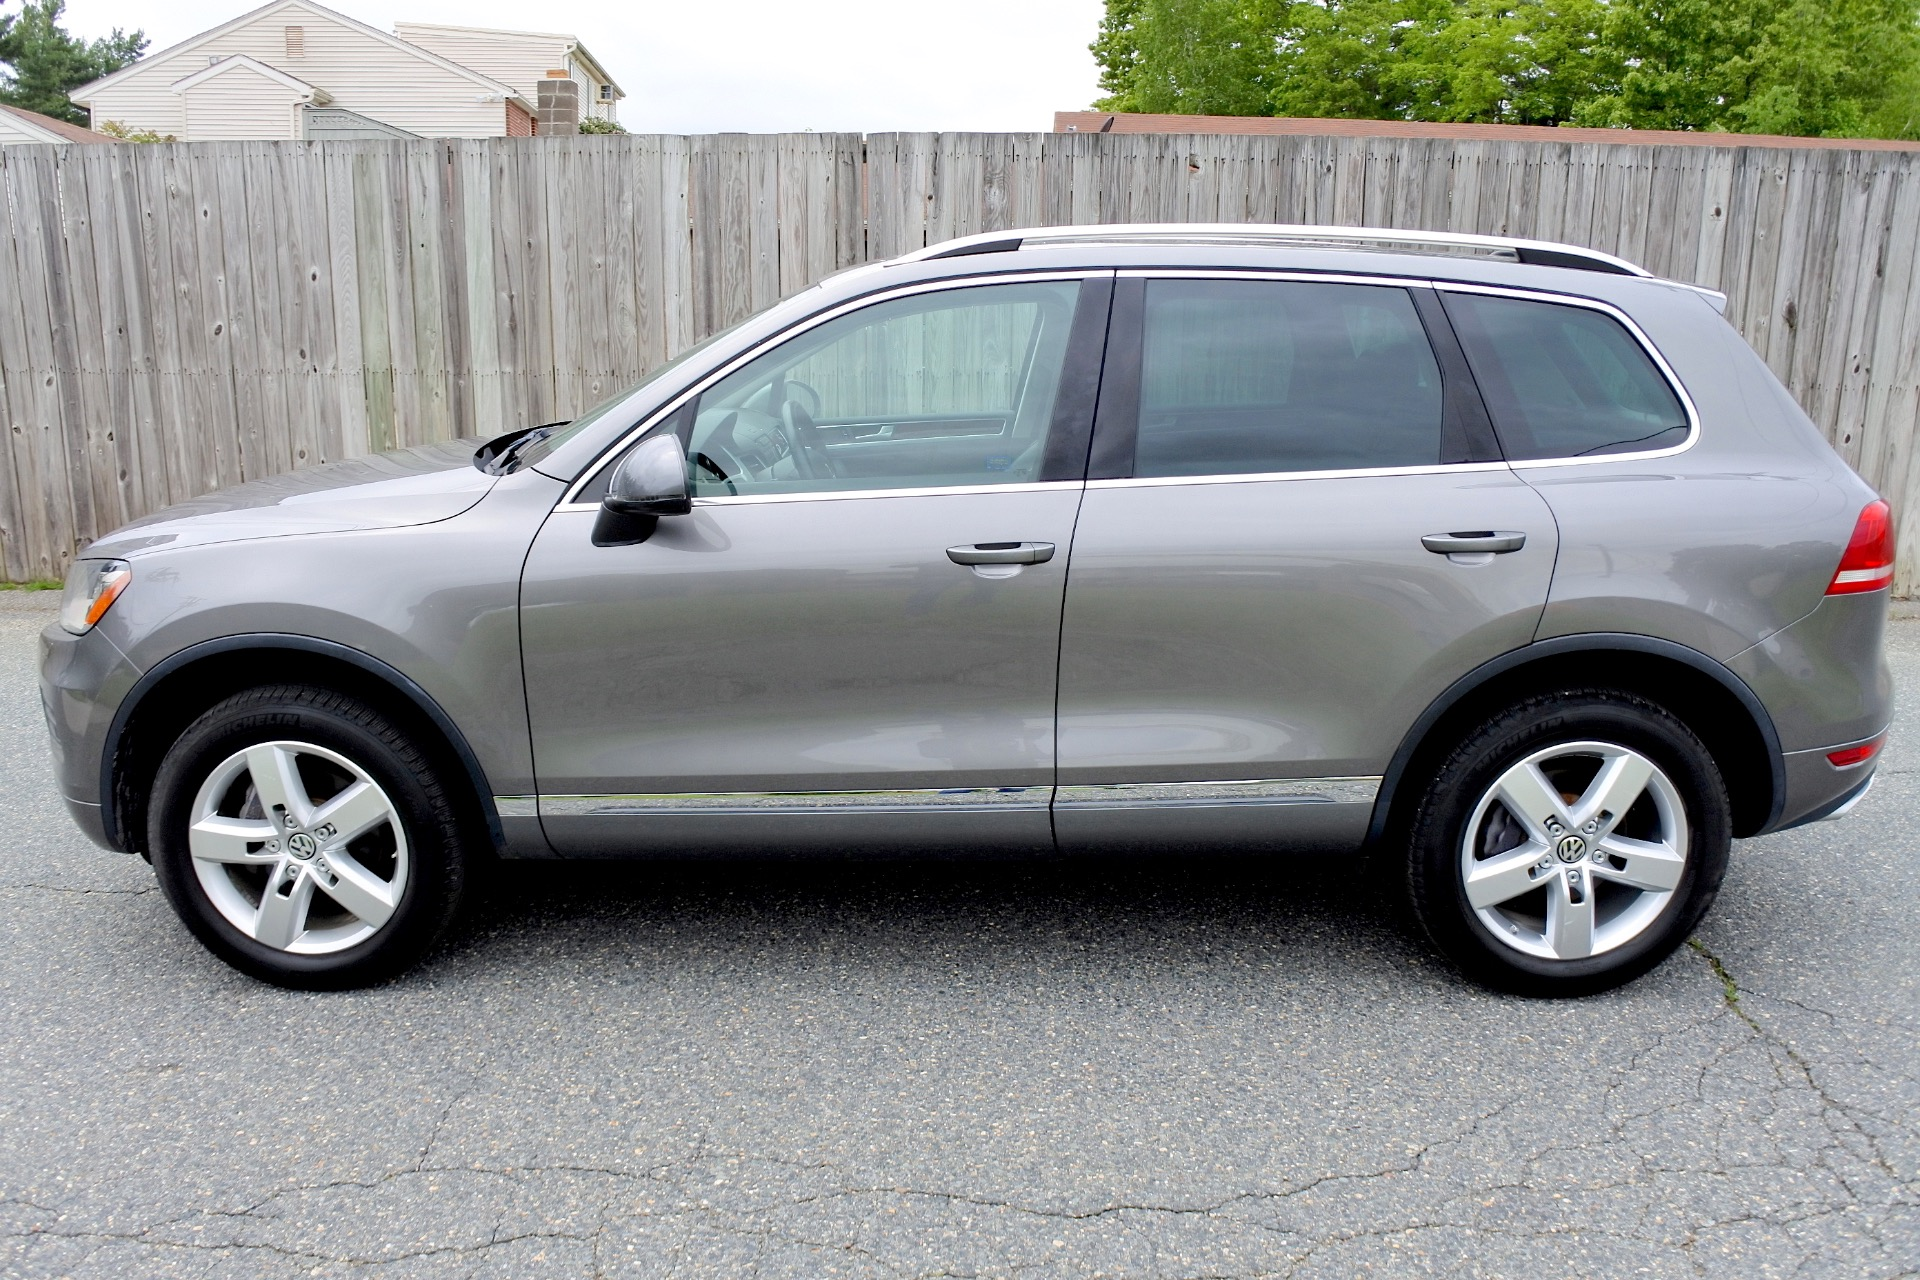 Used 2011 Volkswagen Touareg TDI Lux Used 2011 Volkswagen Touareg TDI Lux for sale  at Metro West Motorcars LLC in Shrewsbury MA 2